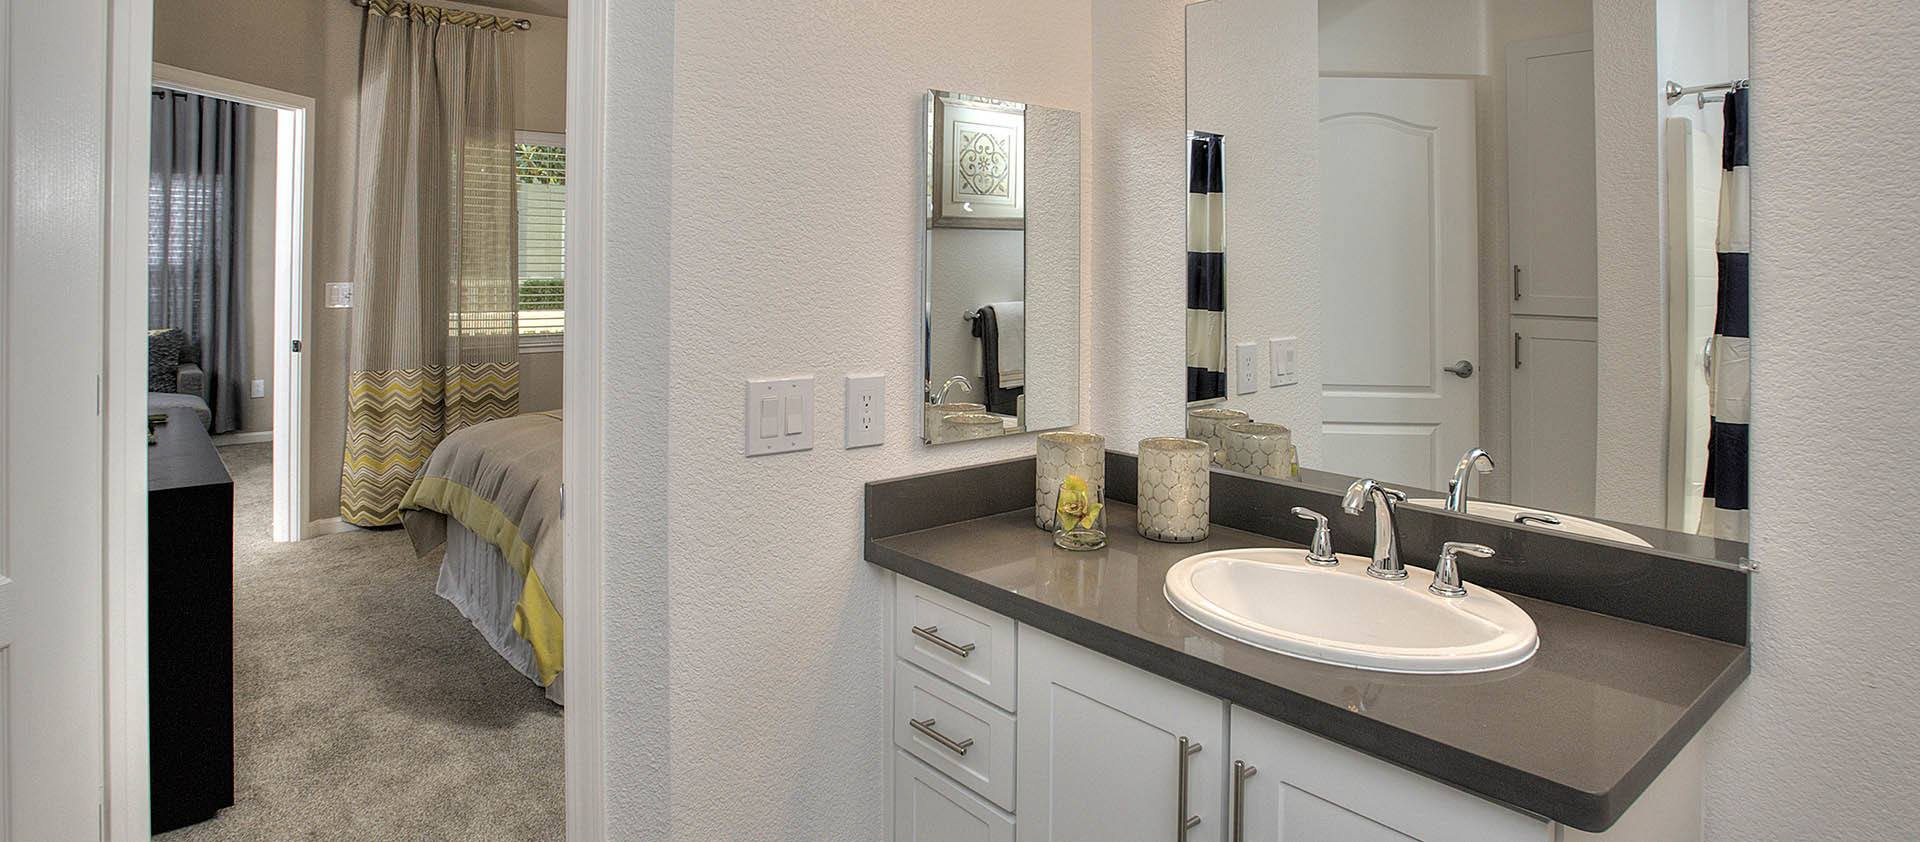 Bathroom In Master Bedroom at Iron Point at Prairie Oaks in Folsom, California